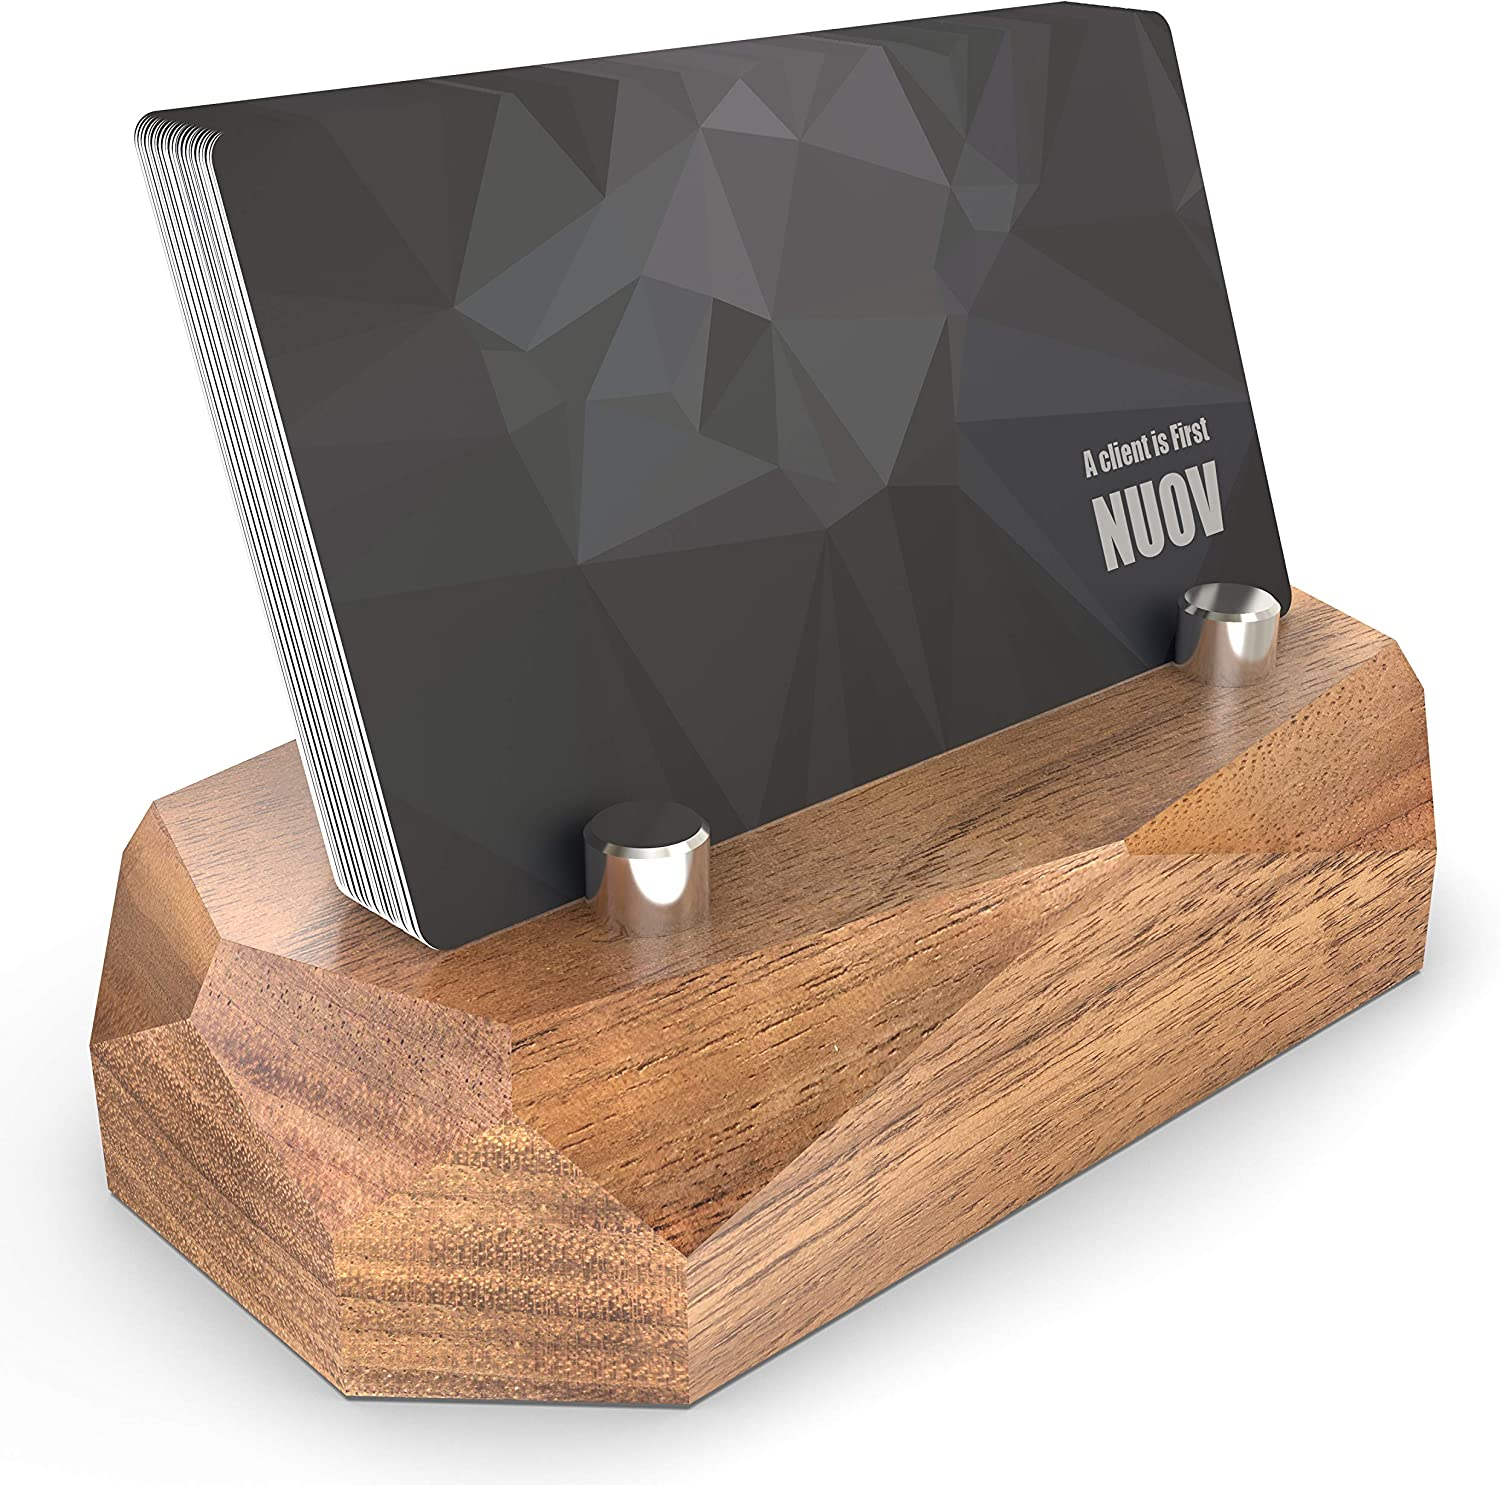 NUOV Business Card Holder for Desk Natural Wood Name Card Display Stand Desktop Wooden Professional Business Card Organizer for Office and Home (Walnut)